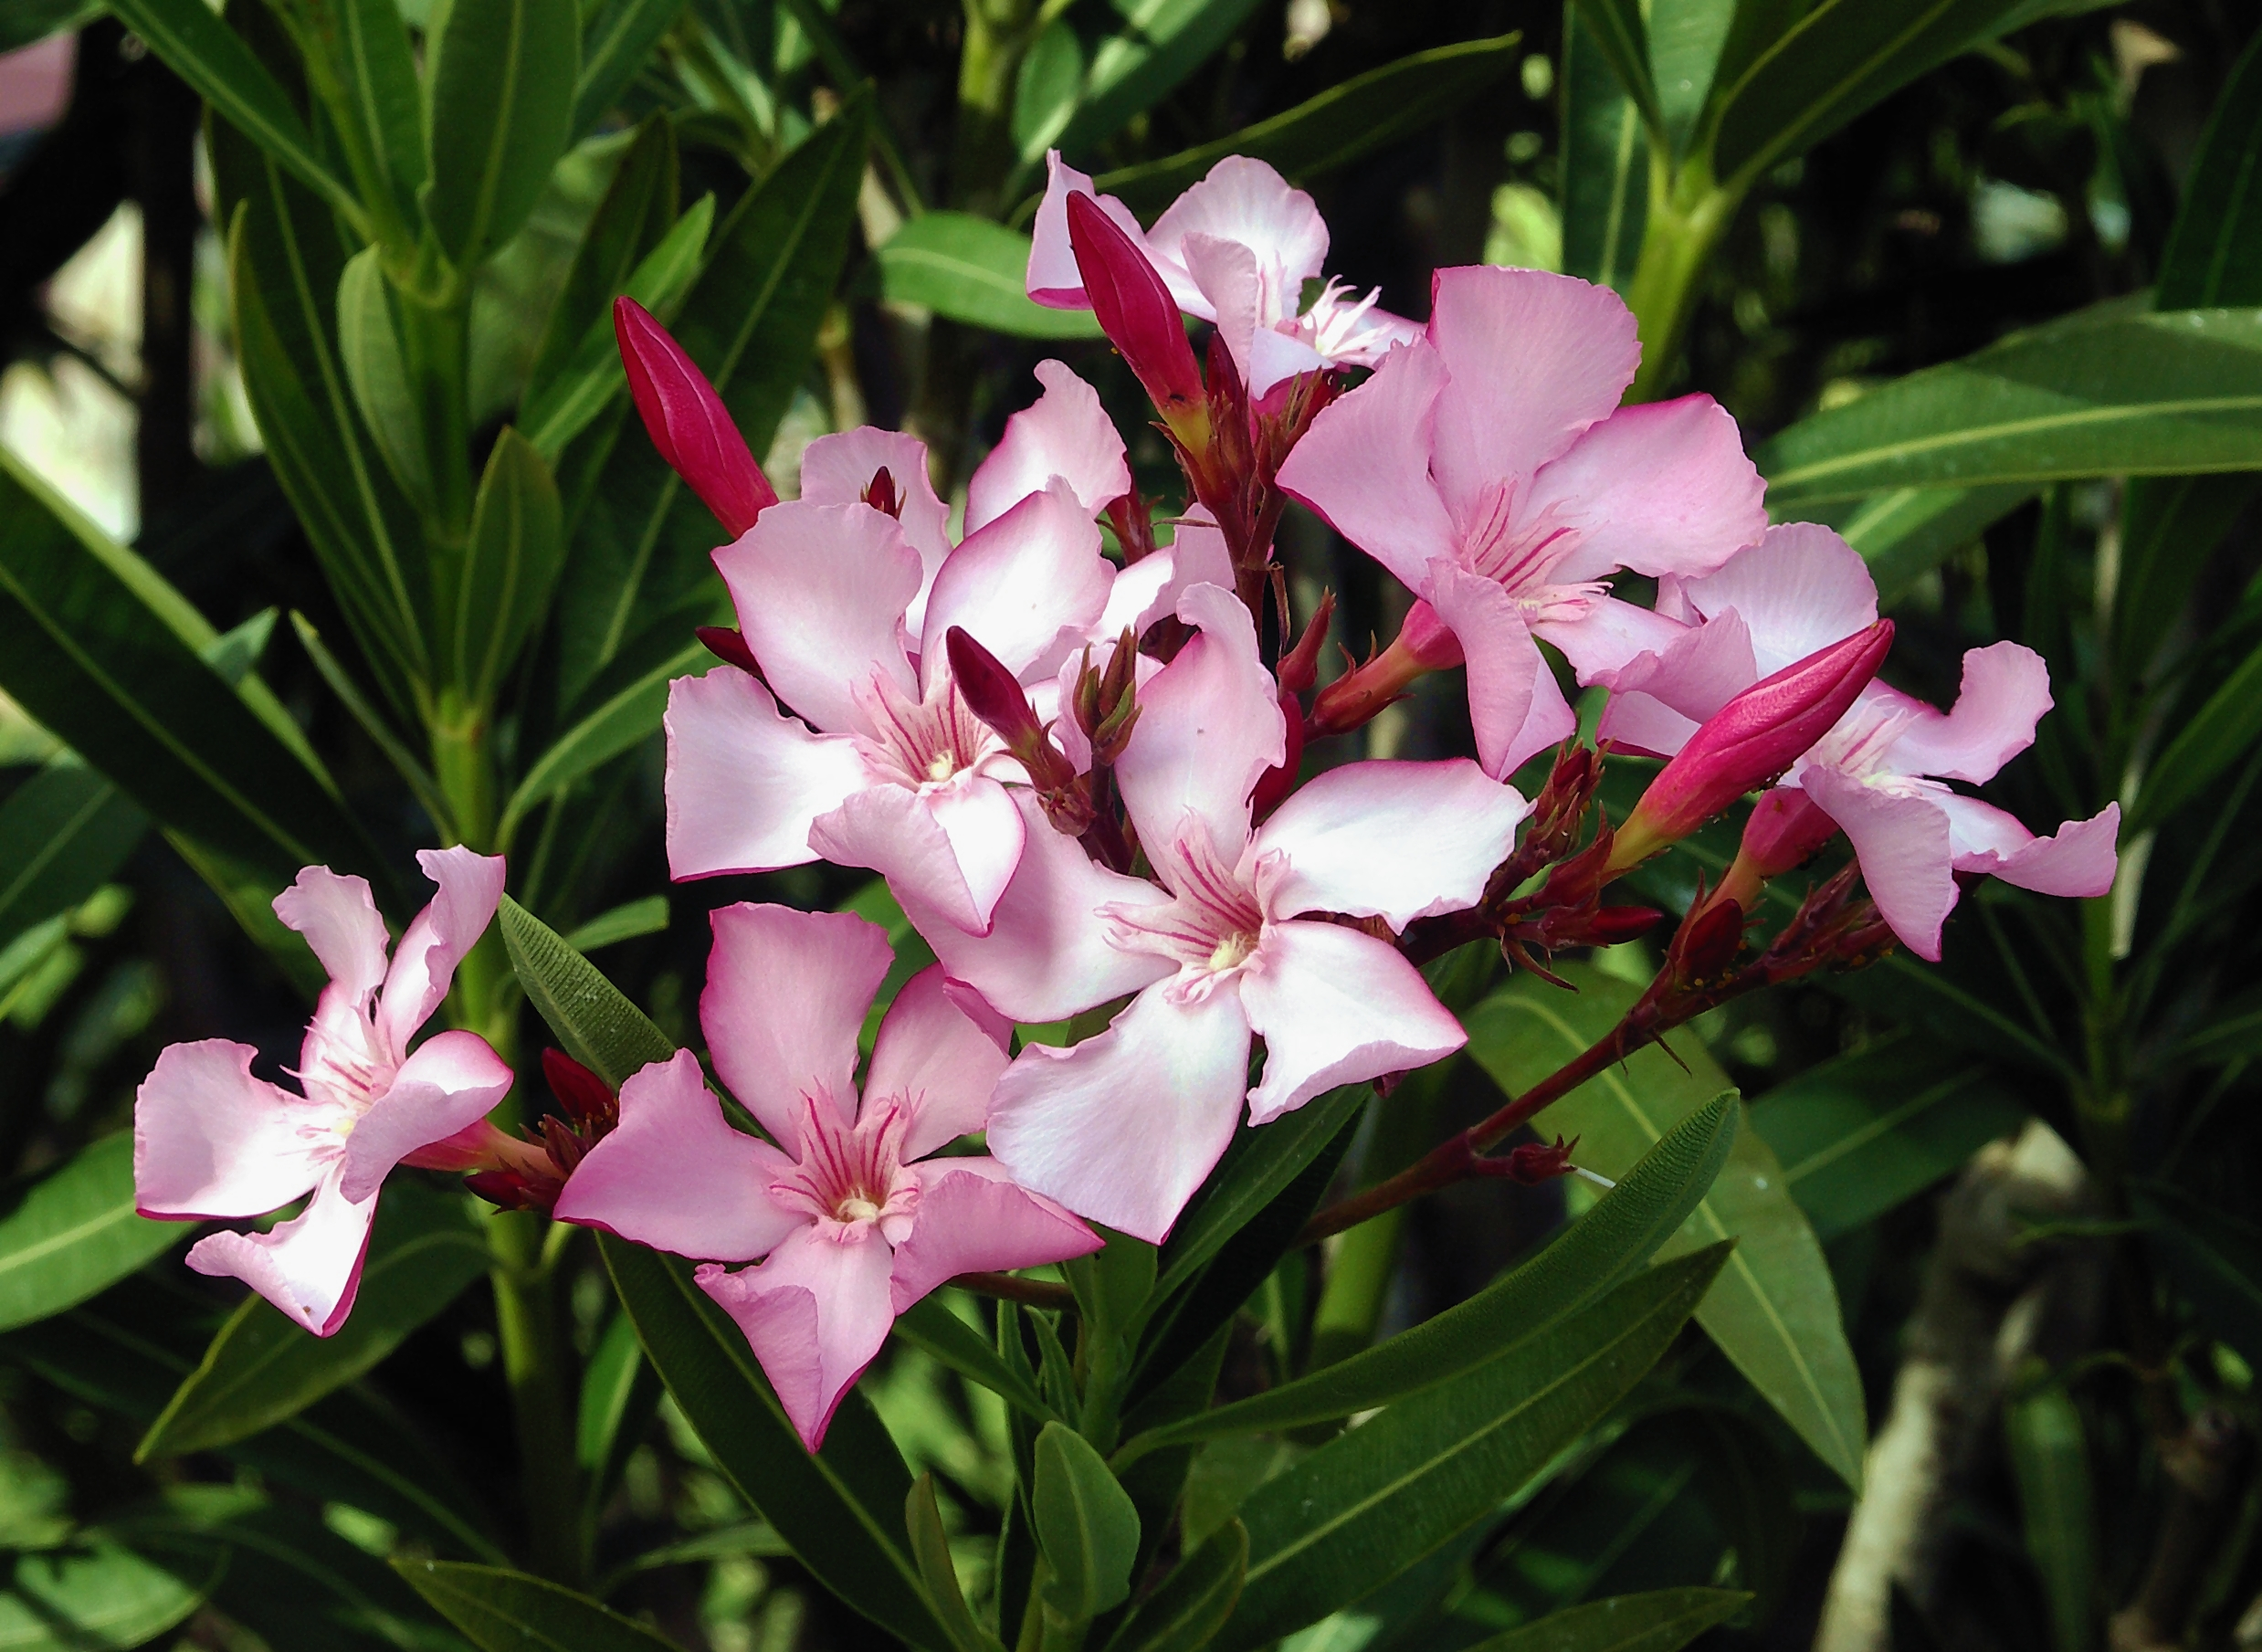 A pink bunch of oleander flours are open with some buds against thin green leaves